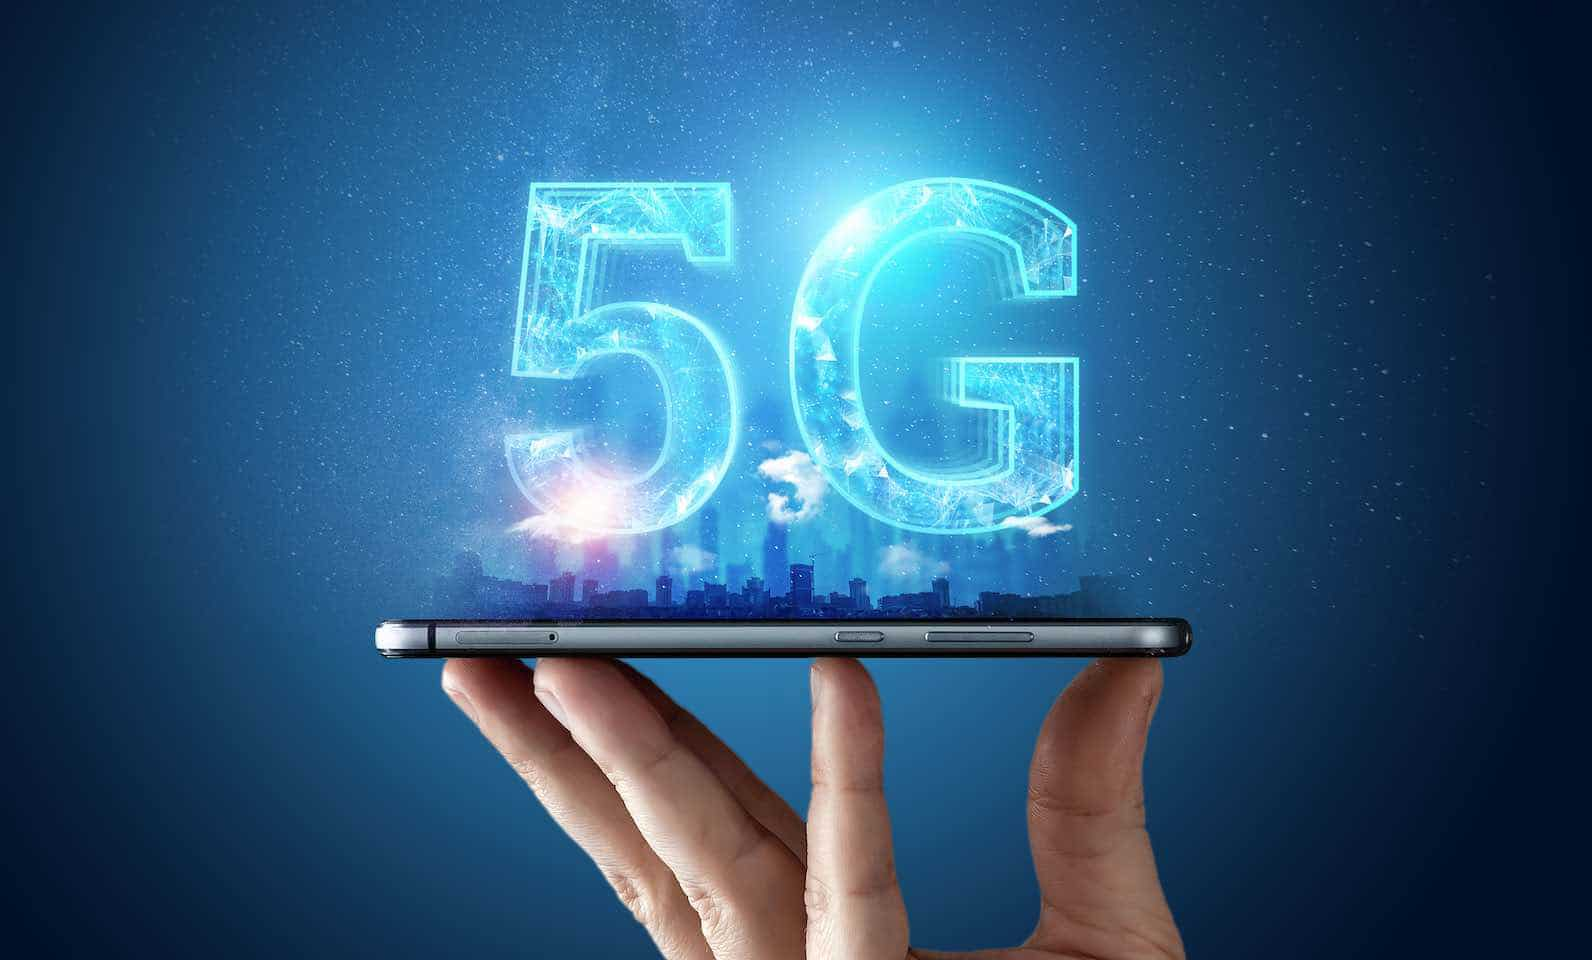 Industry chain news: 5G iPhone may be postponed to October